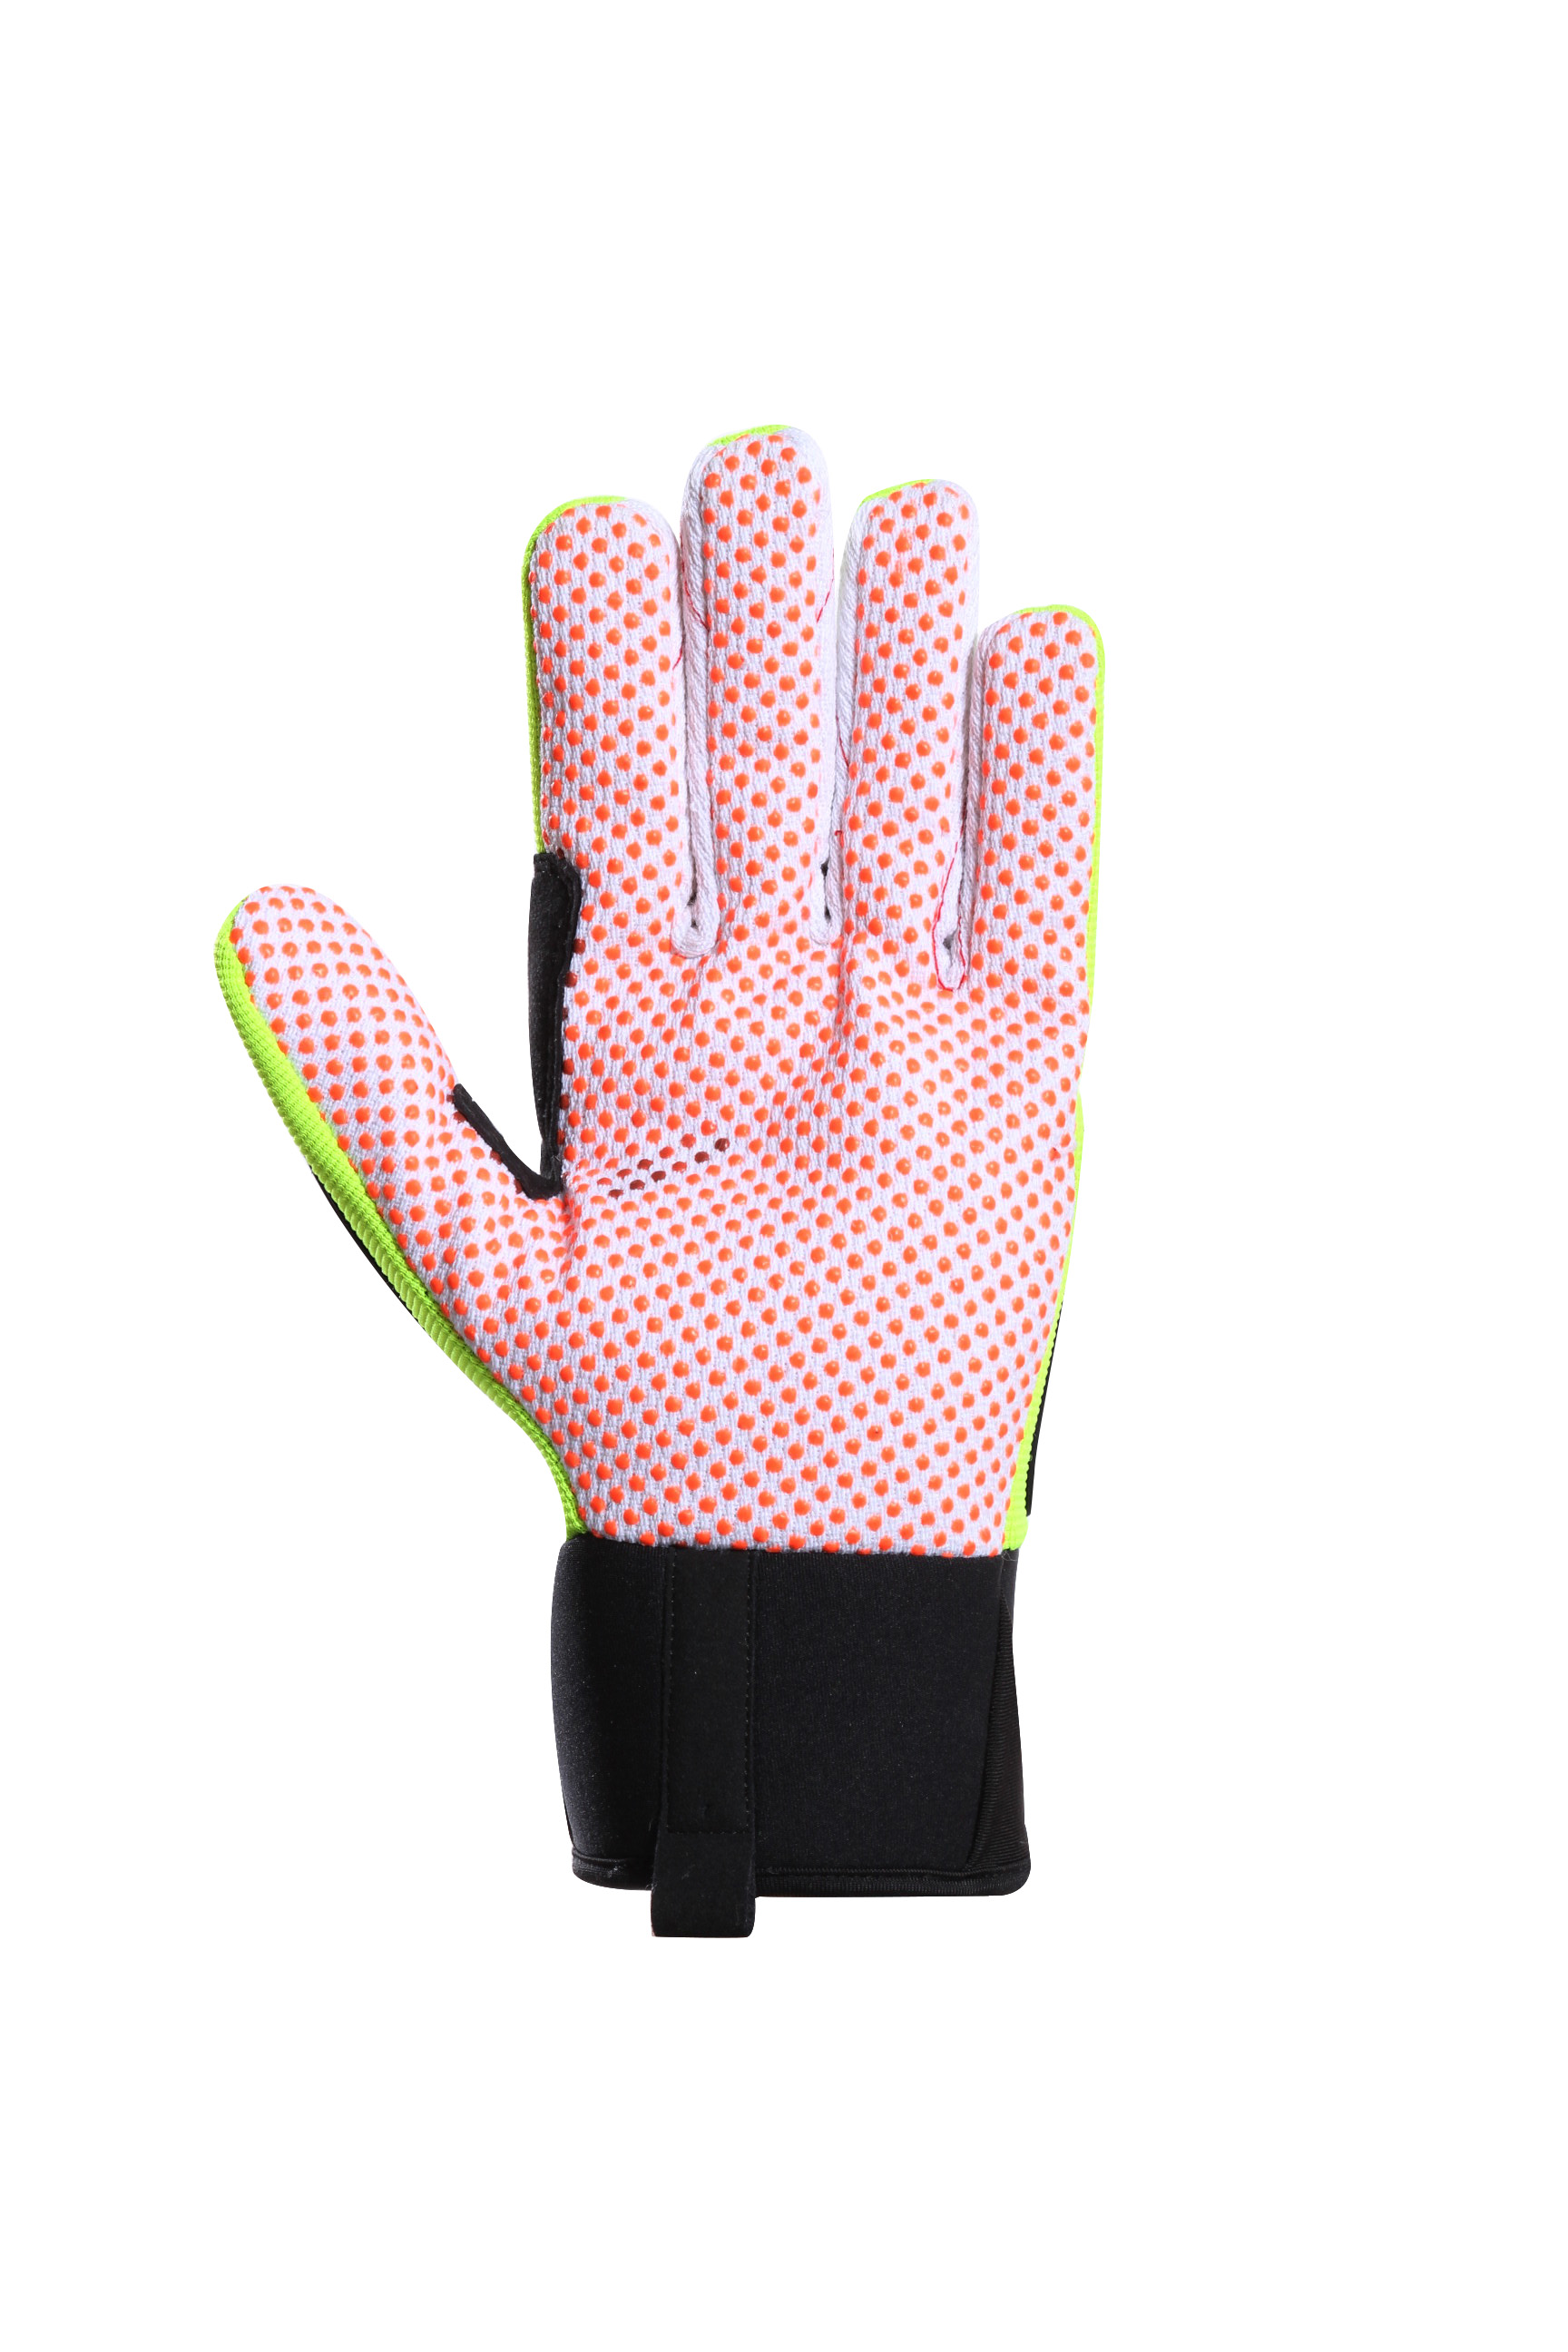 new Oil resistant gloves